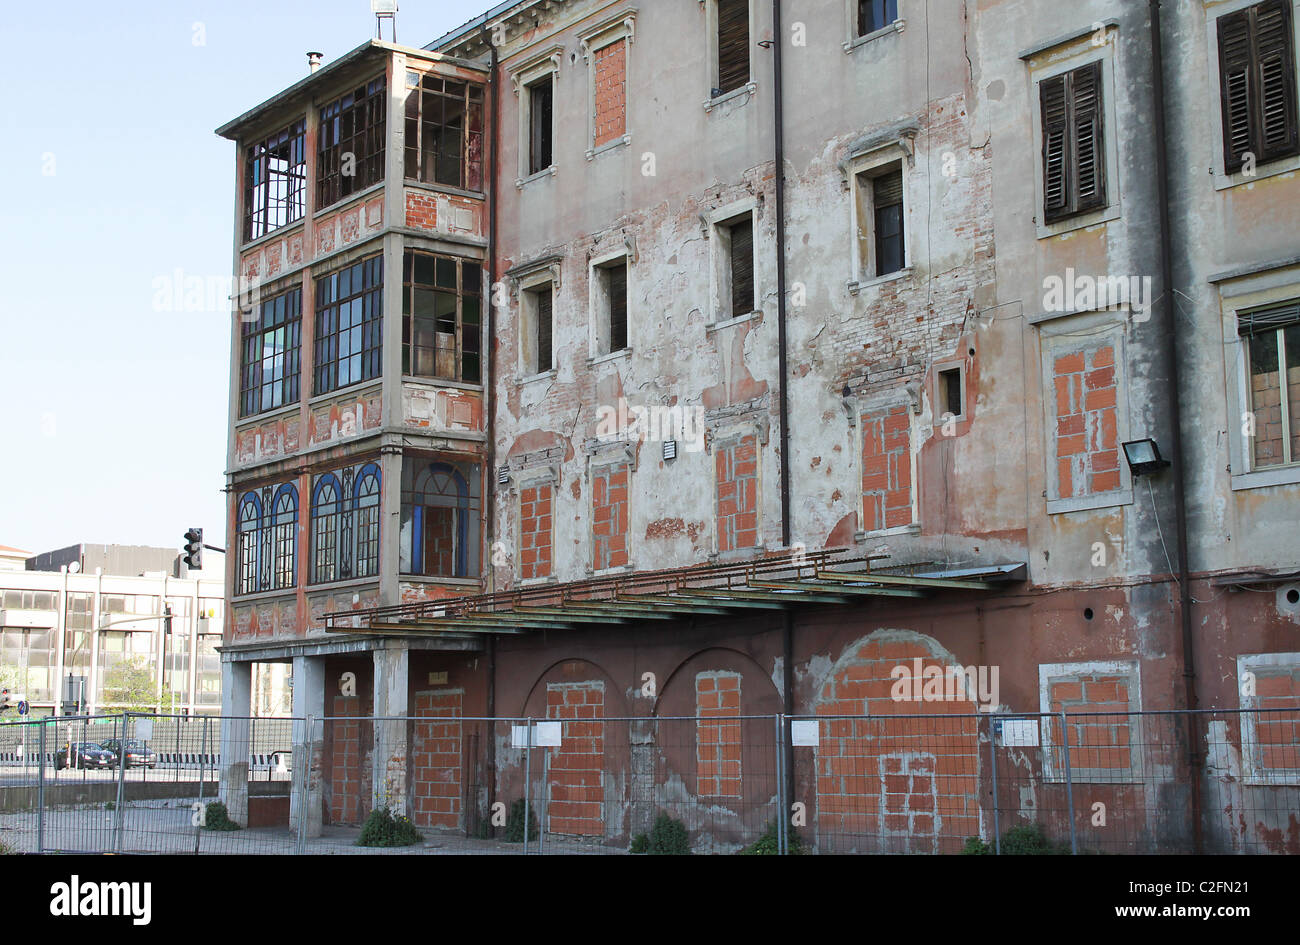 abandon building - Stock Image